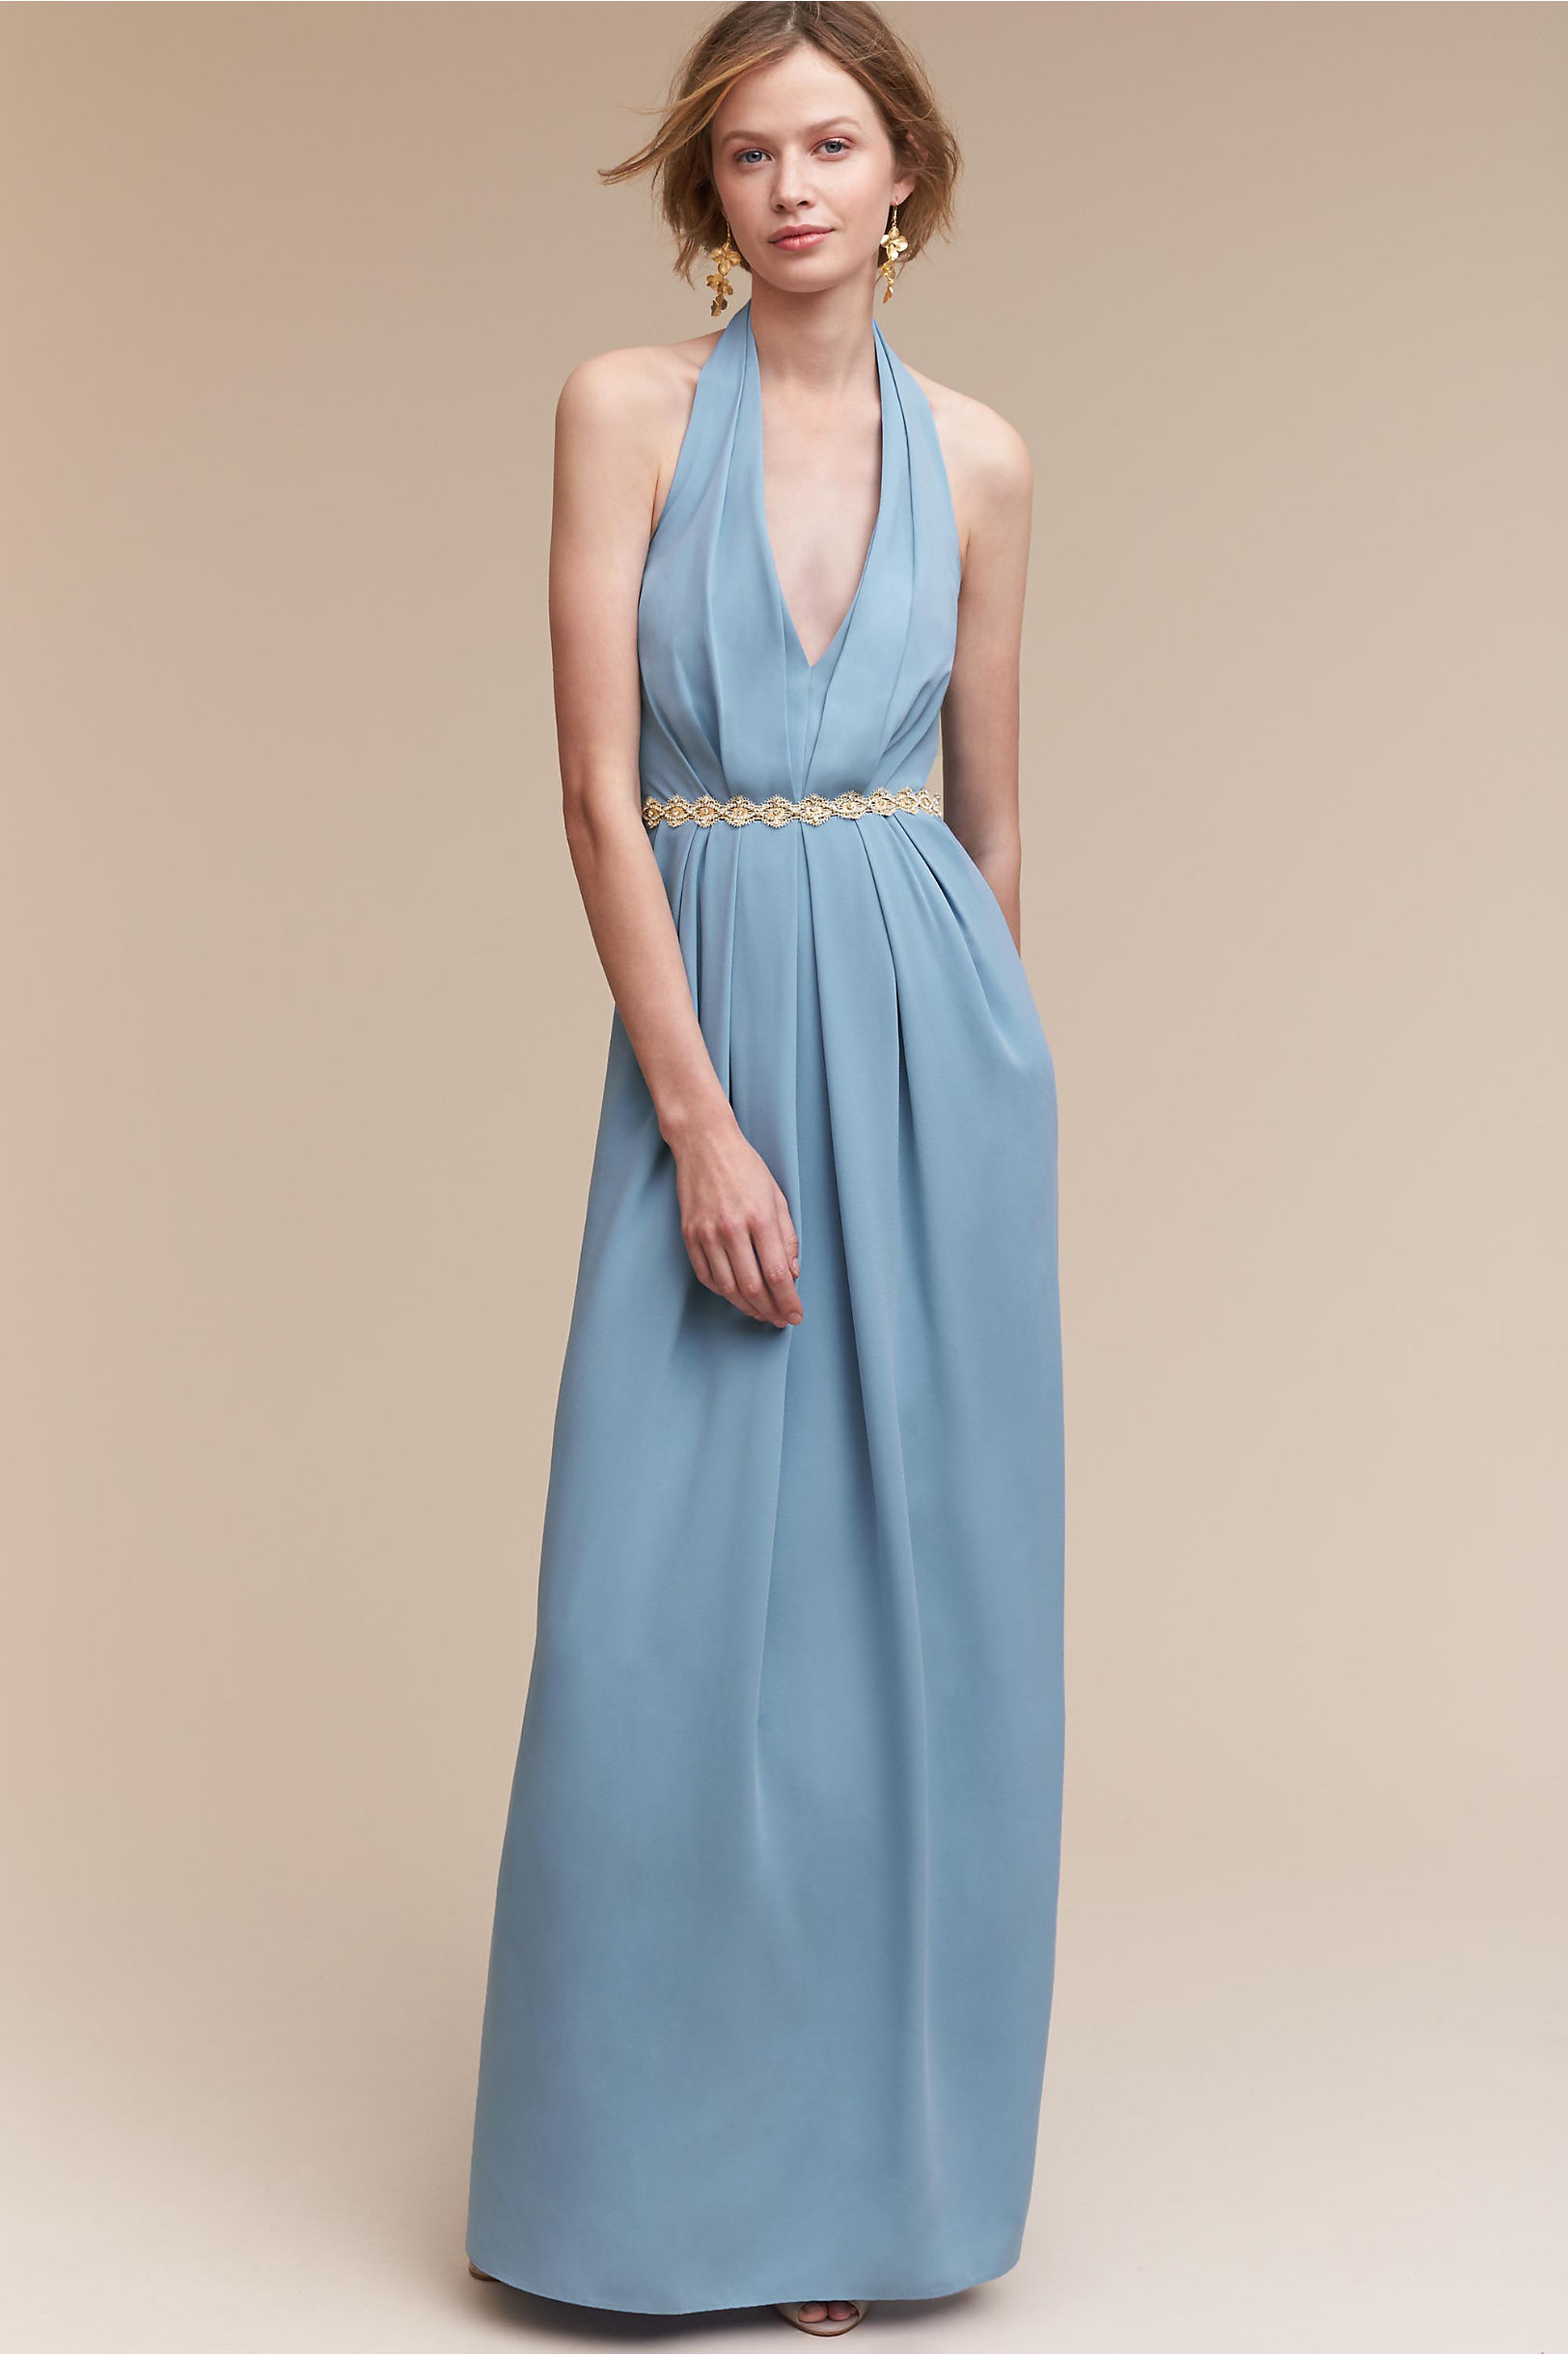 Rasa Dress in Sale | BHLDN